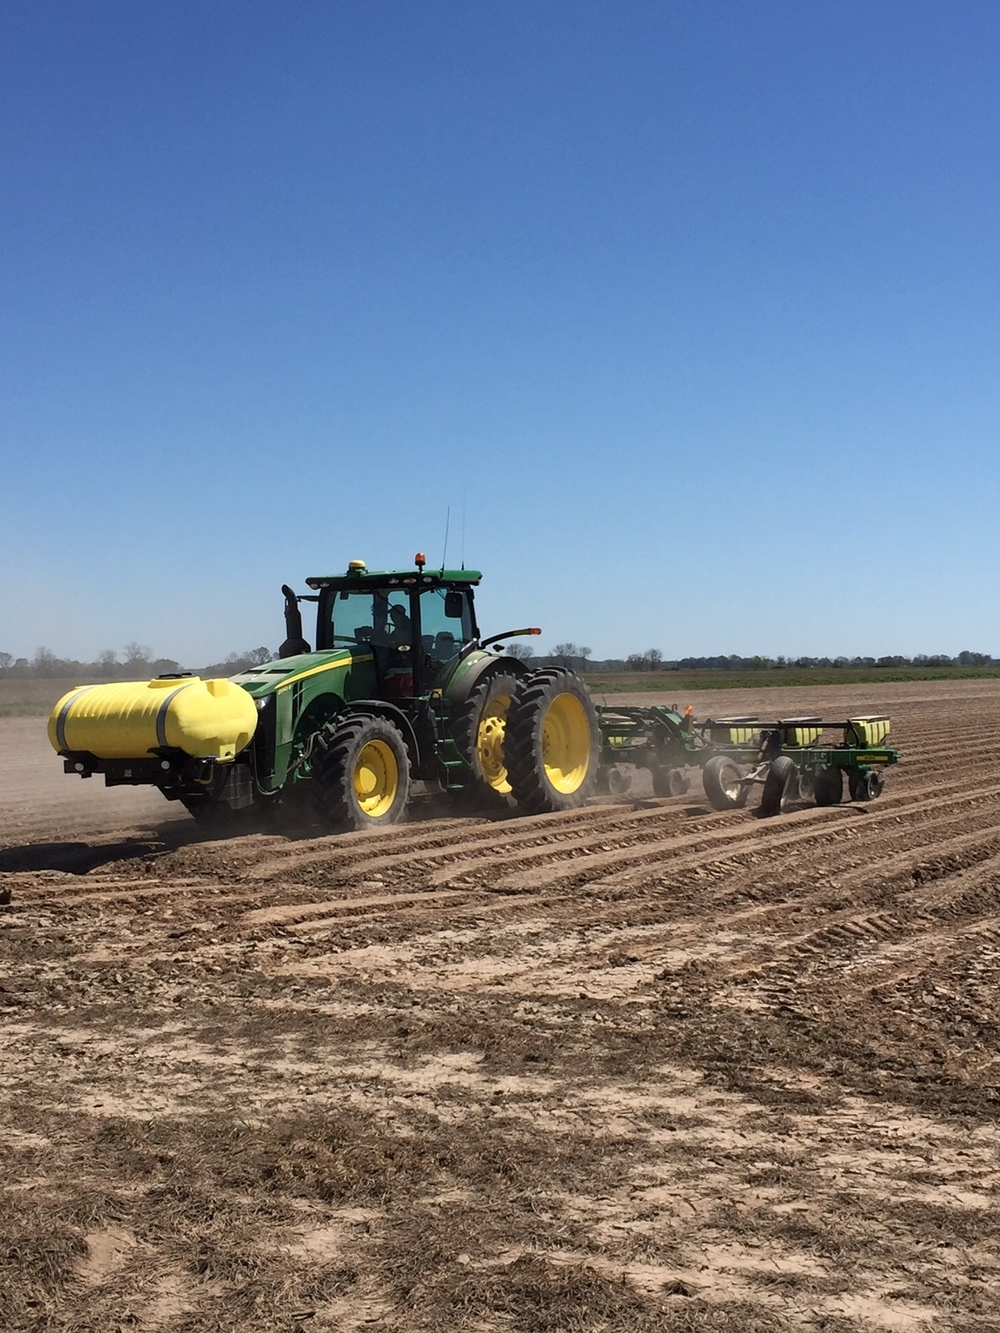 a tractor pulling a planter with cotton seed